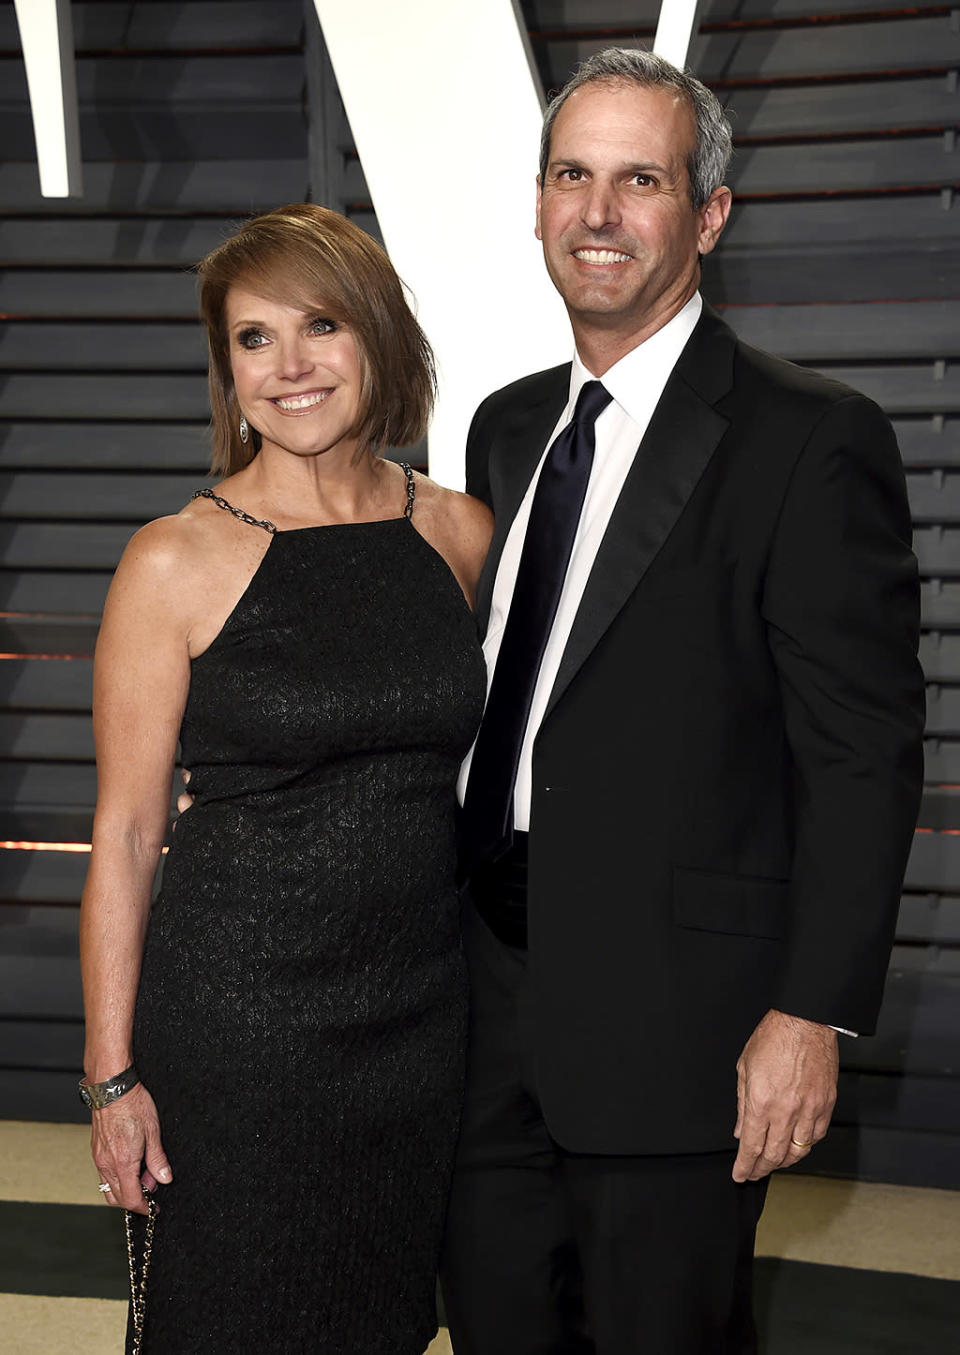 <p>Katie Couric, left, and John Molner arrive at the Vanity Fair Oscar Party on Sunday, Feb. 26, 2017, in Beverly Hills, Calif. (Photo by Evan Agostini/Invision/AP) </p>